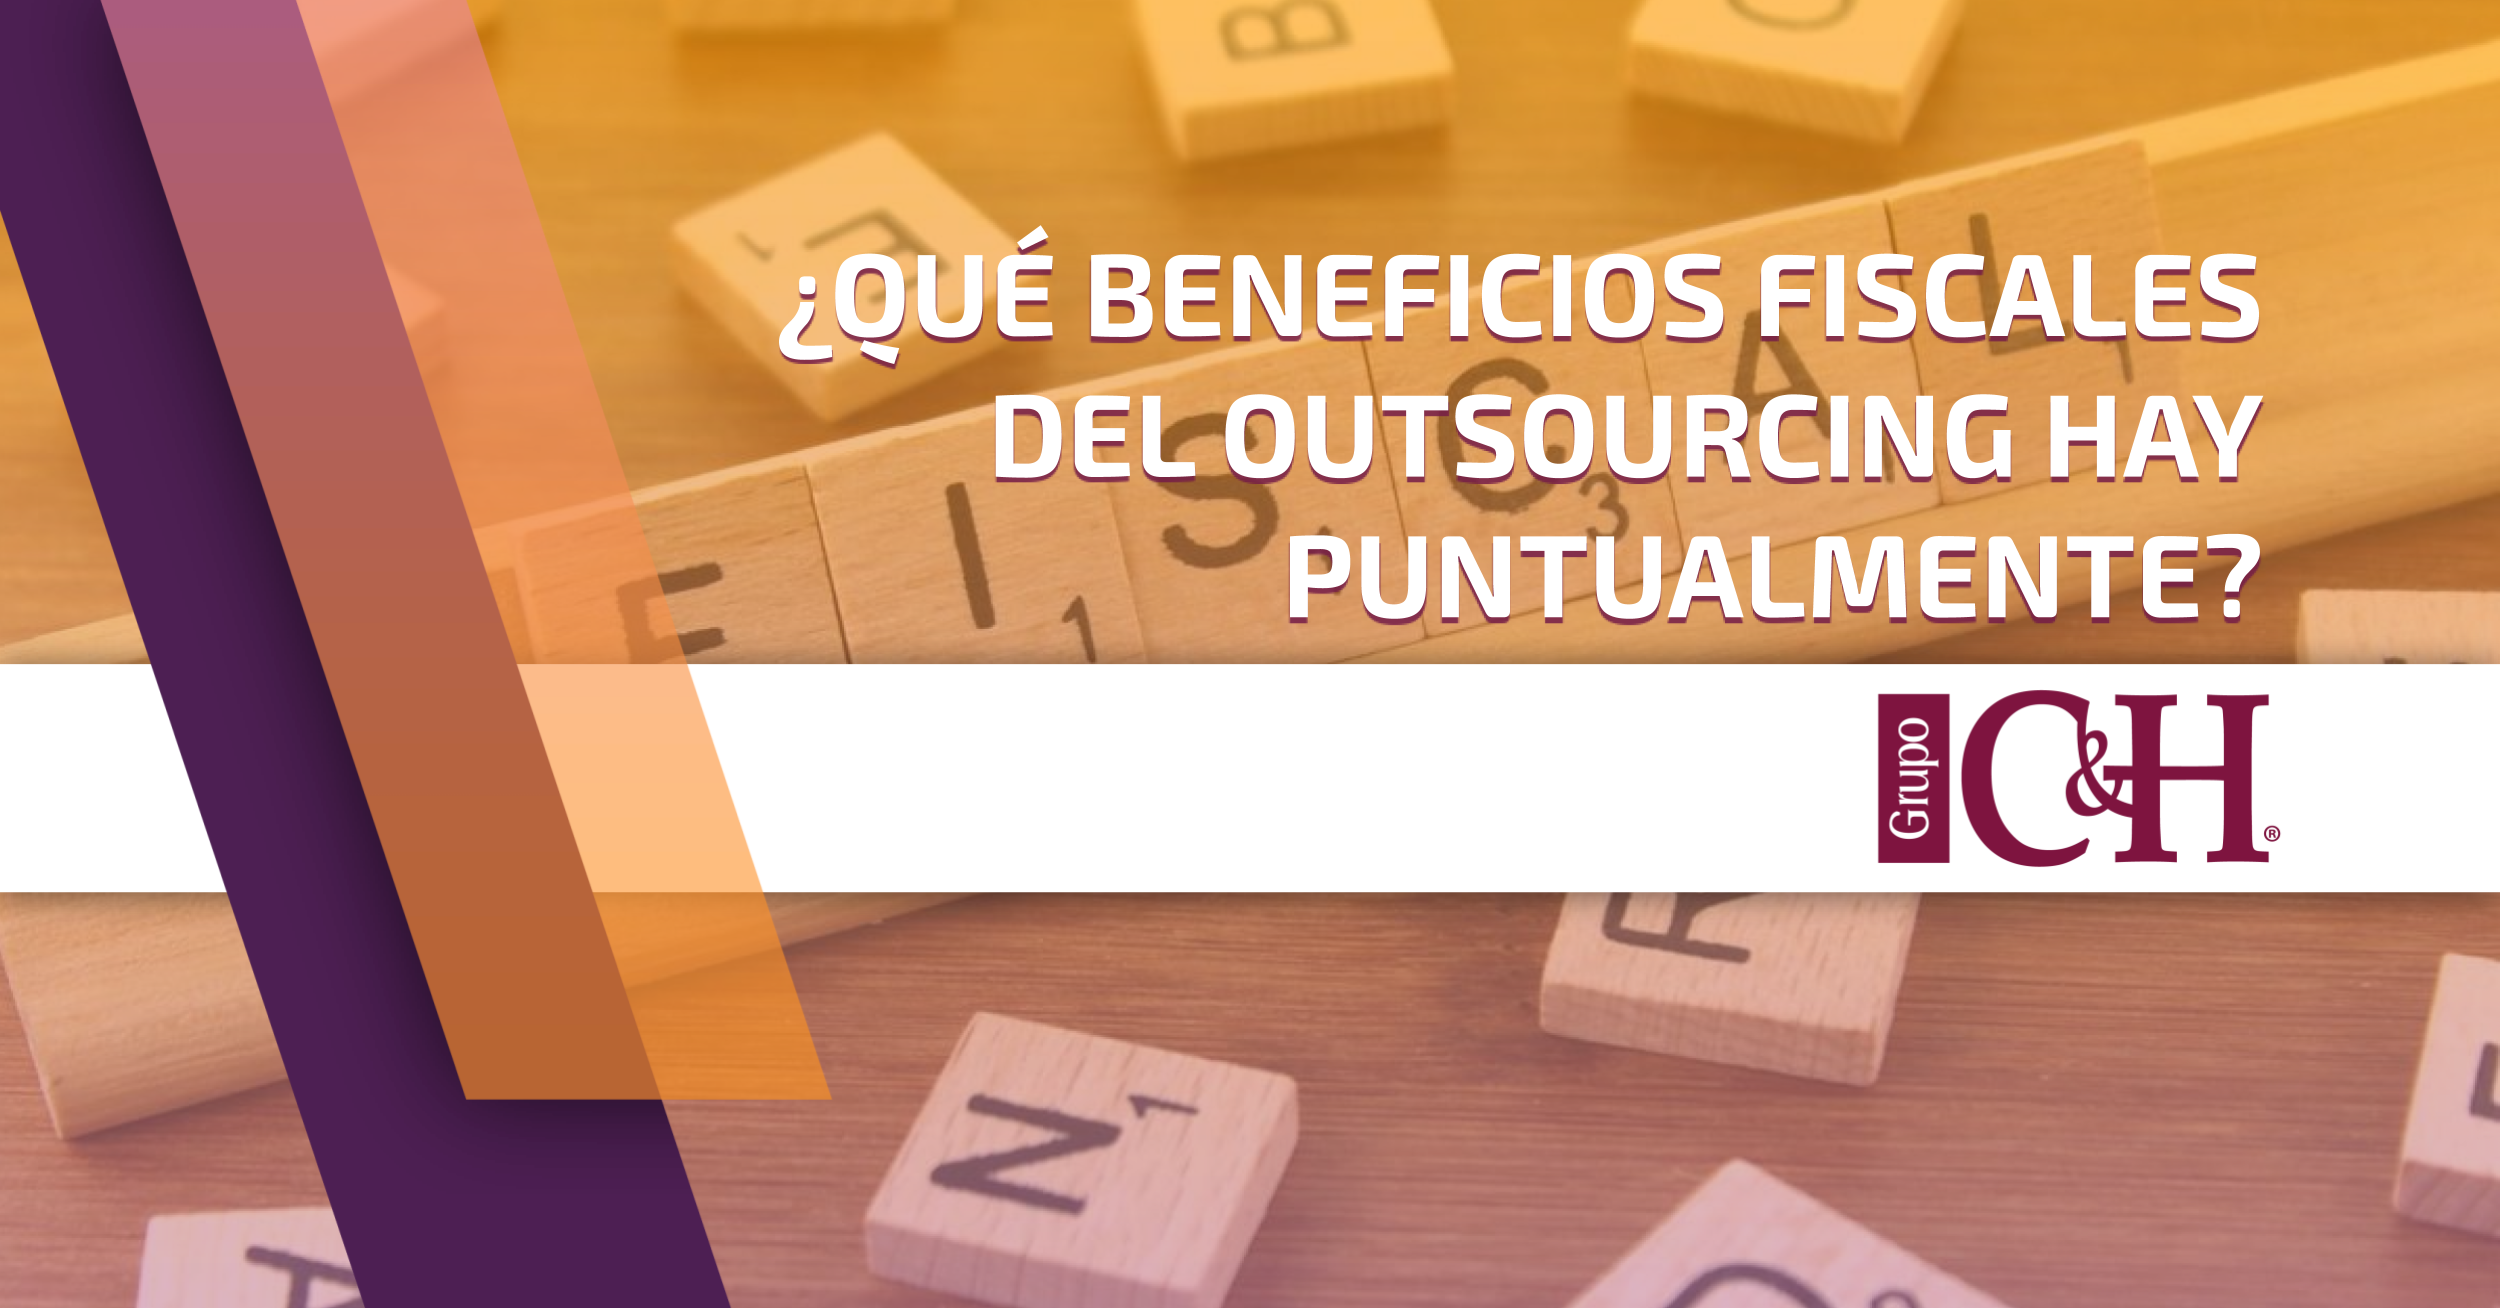 beneficios fiscales outsourcing